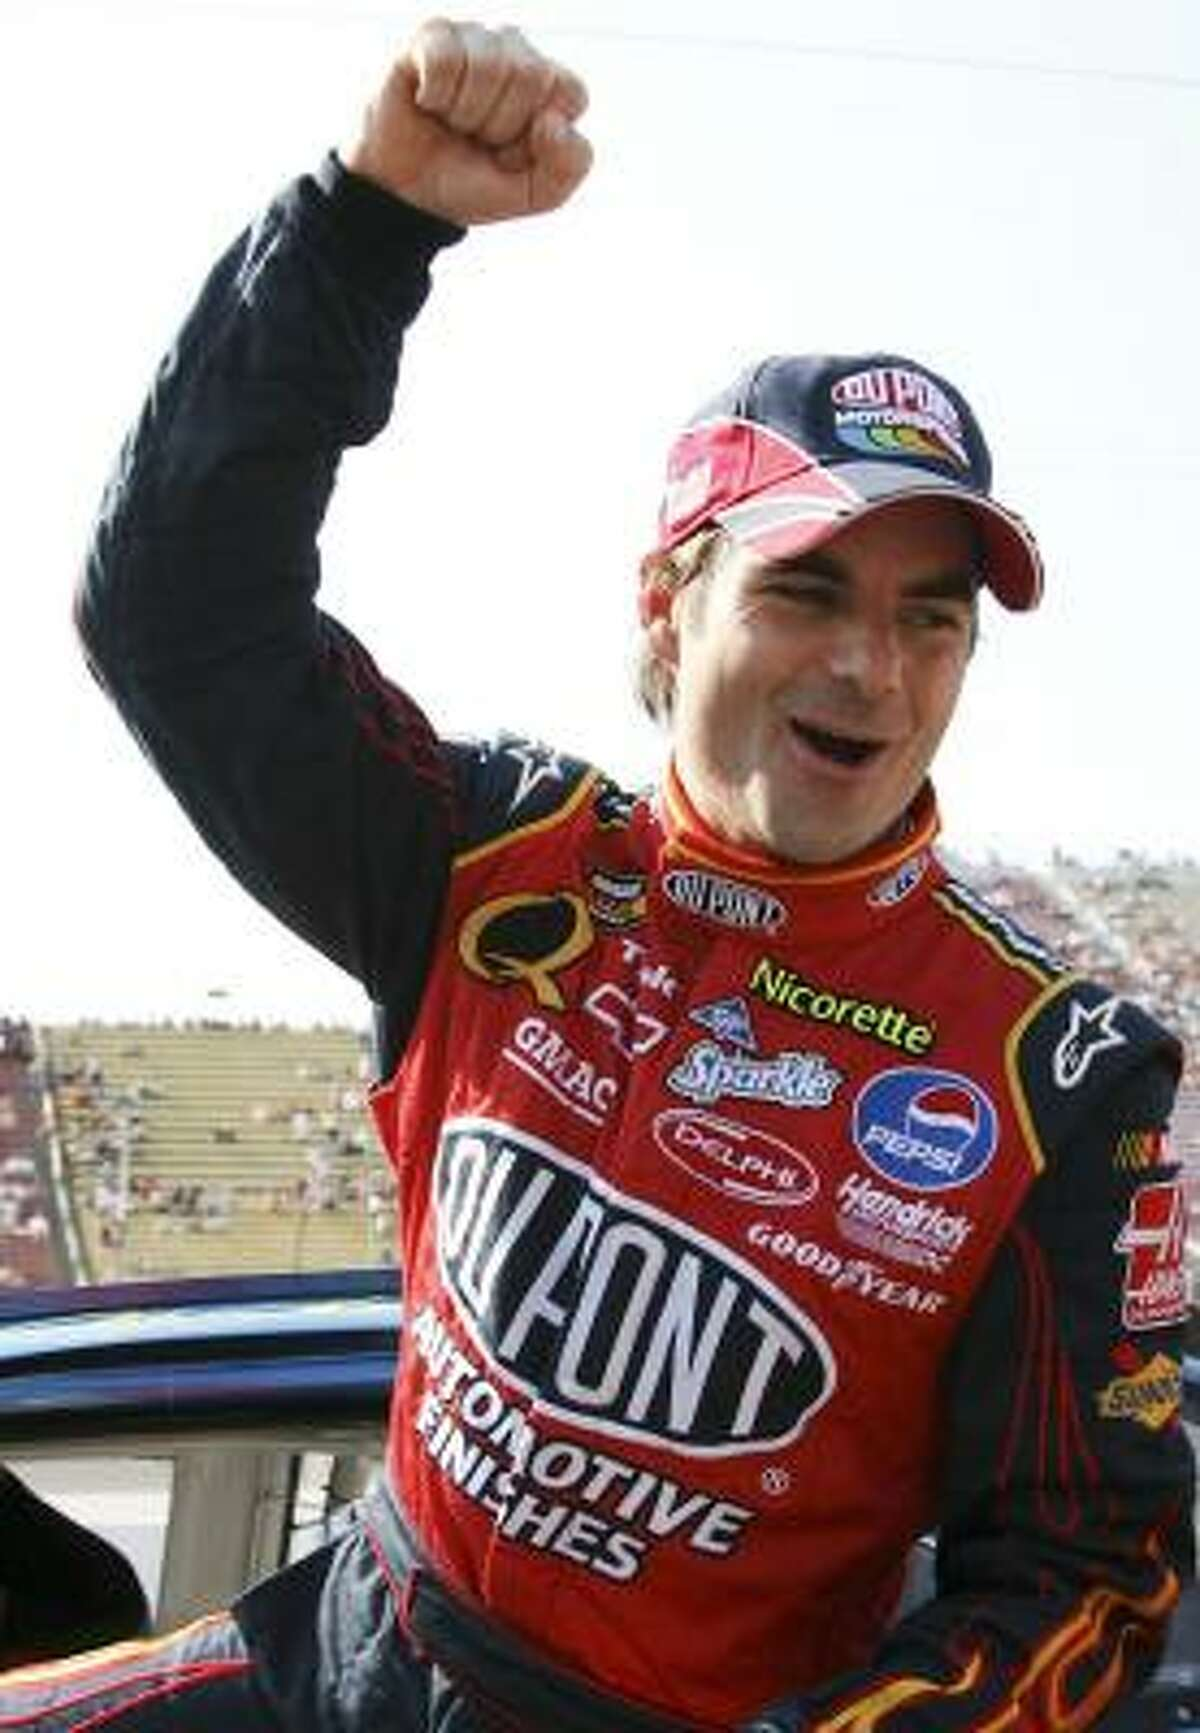 Jeff Gordon, a four-time race winner this season, celebrates his sixth pole of 2007 after beating the field Friday at Michigan International Speedway.